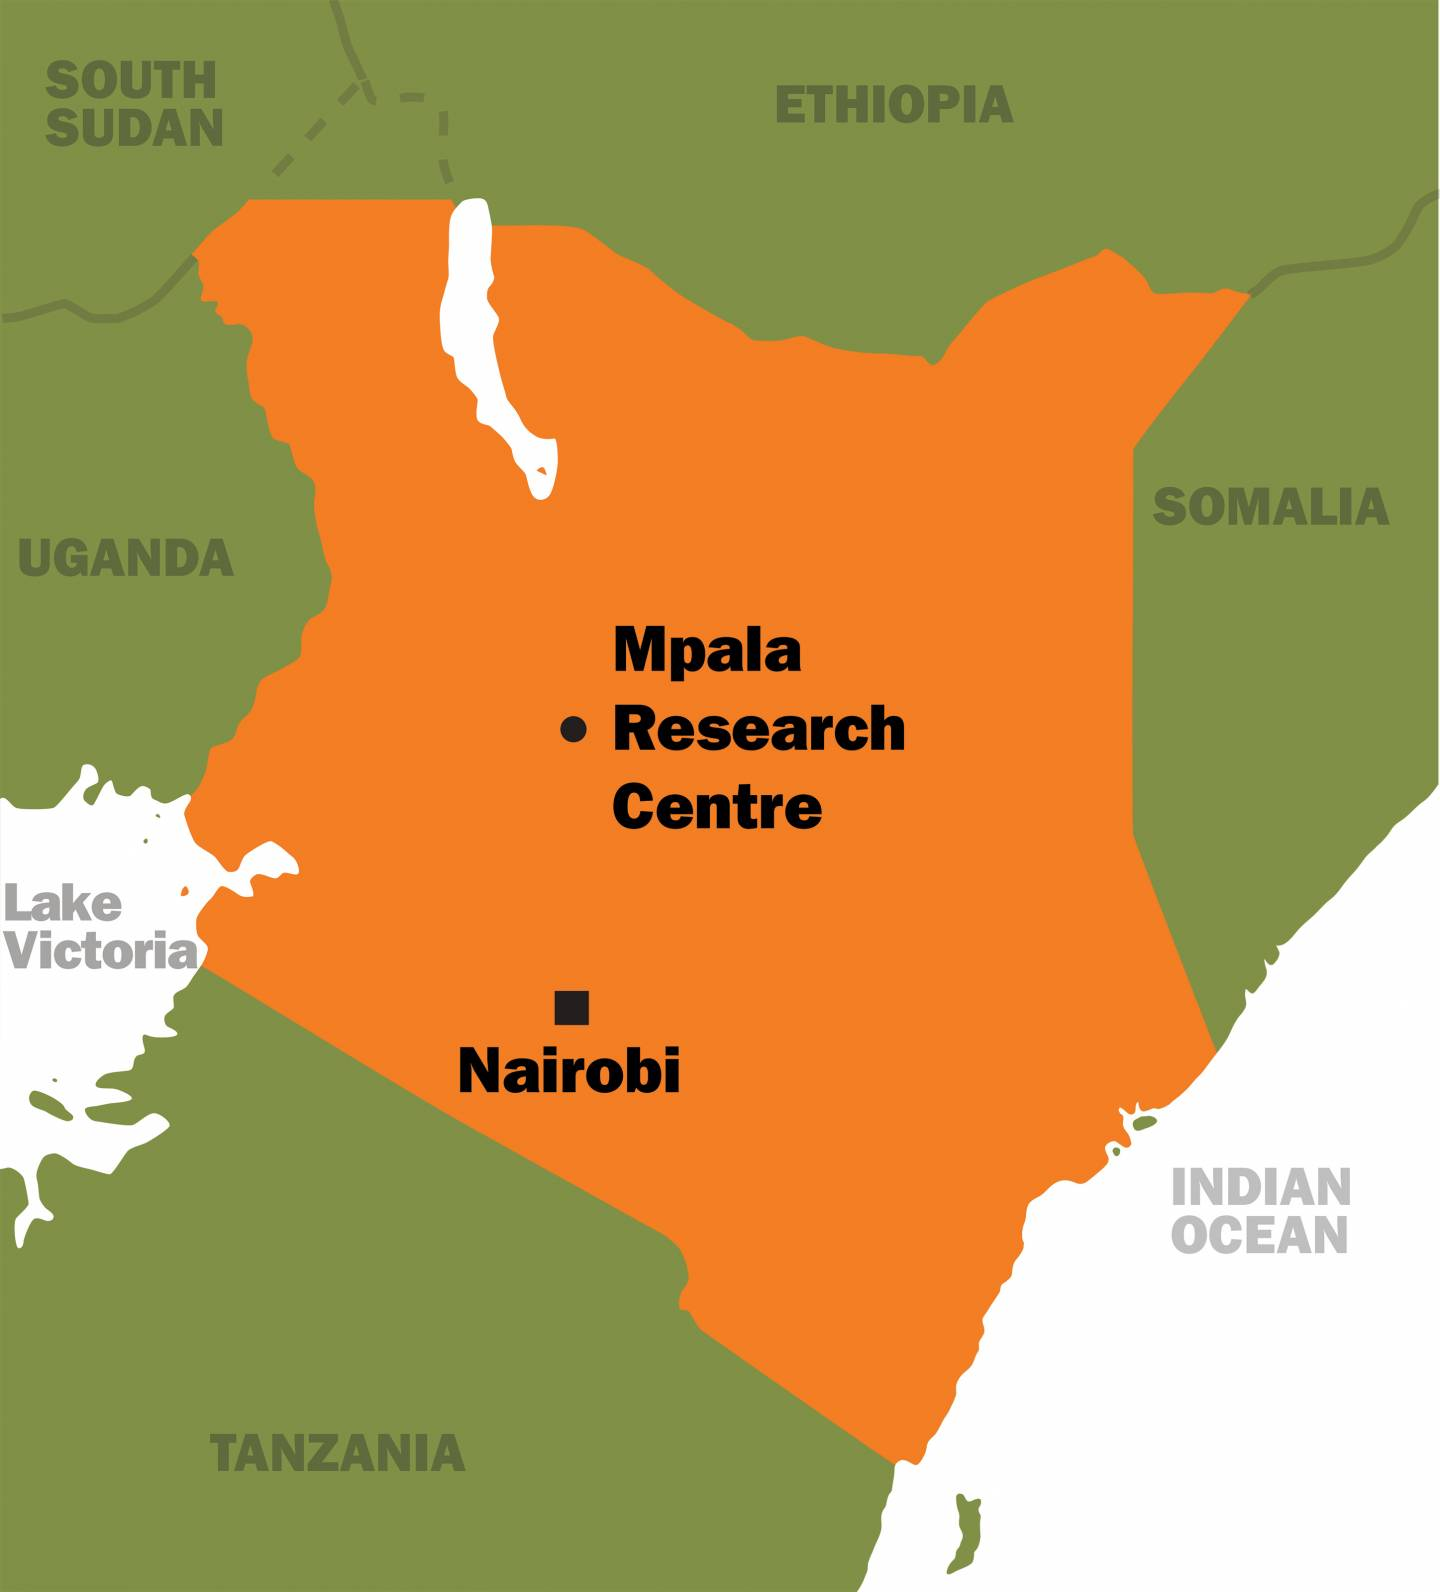 Map of Kenya, showing where the Mpala Research Center is located